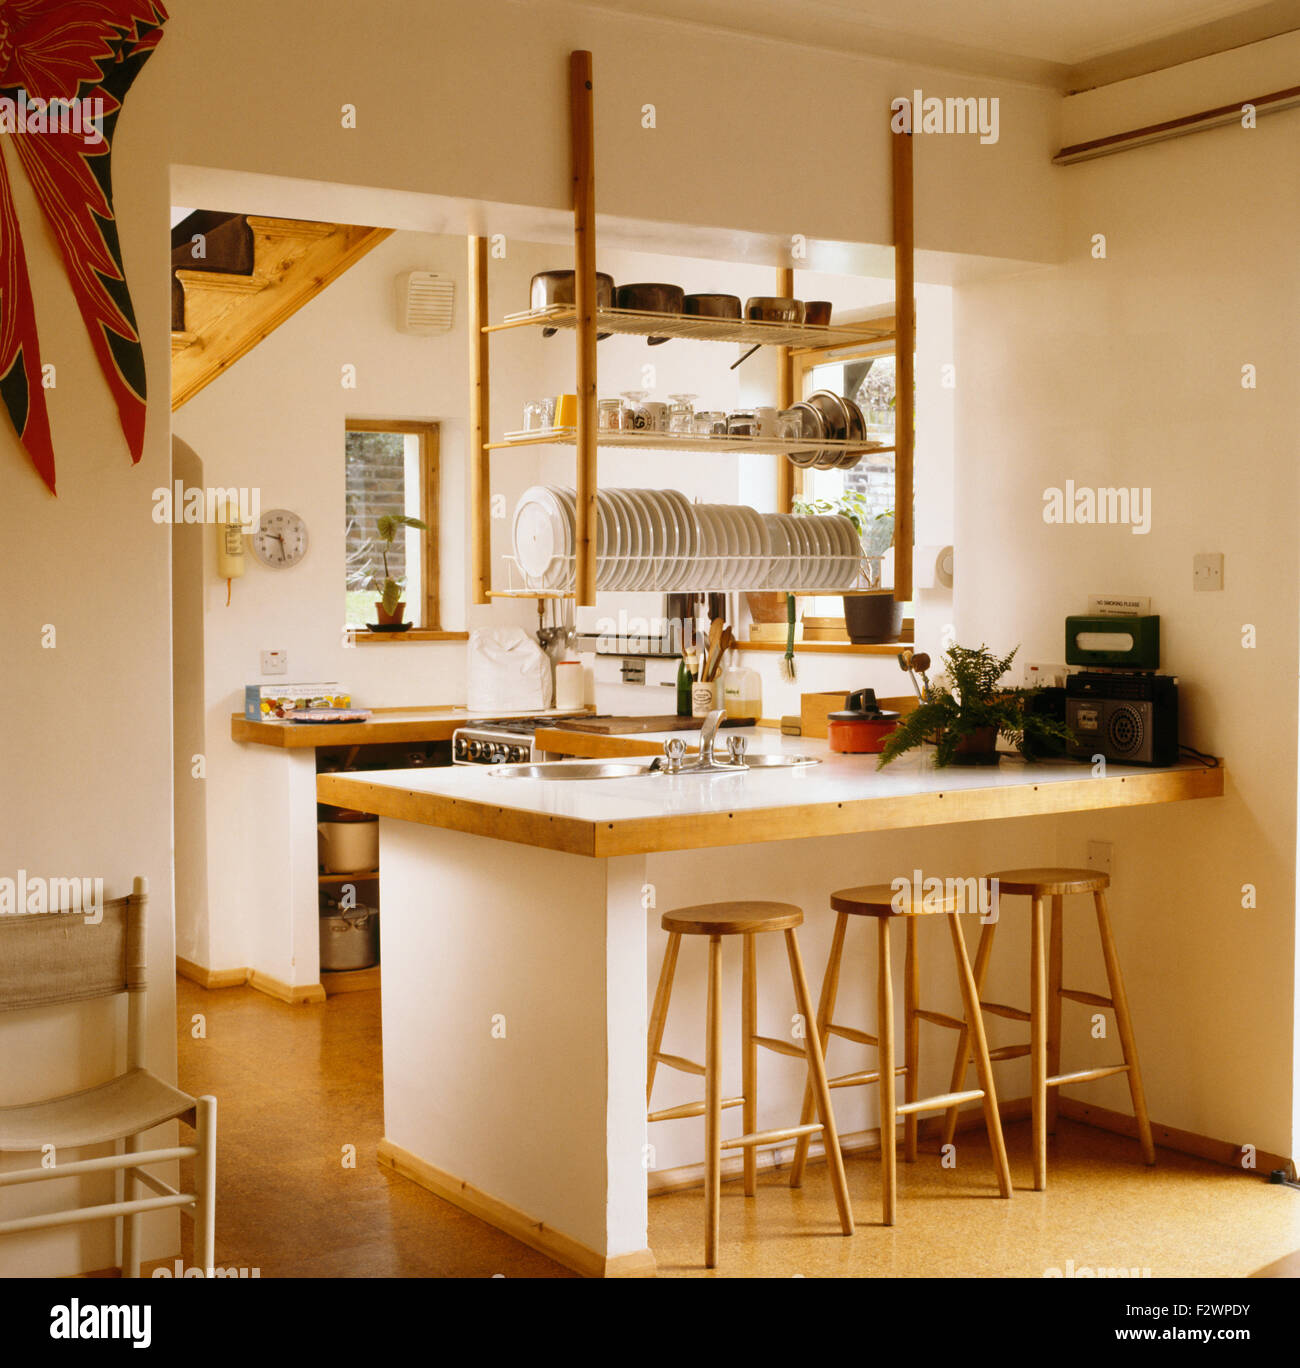 Beau Wooden Stools At Breakfast Bar Below Hanging Wooden Shelves In Nineties  Kitchen